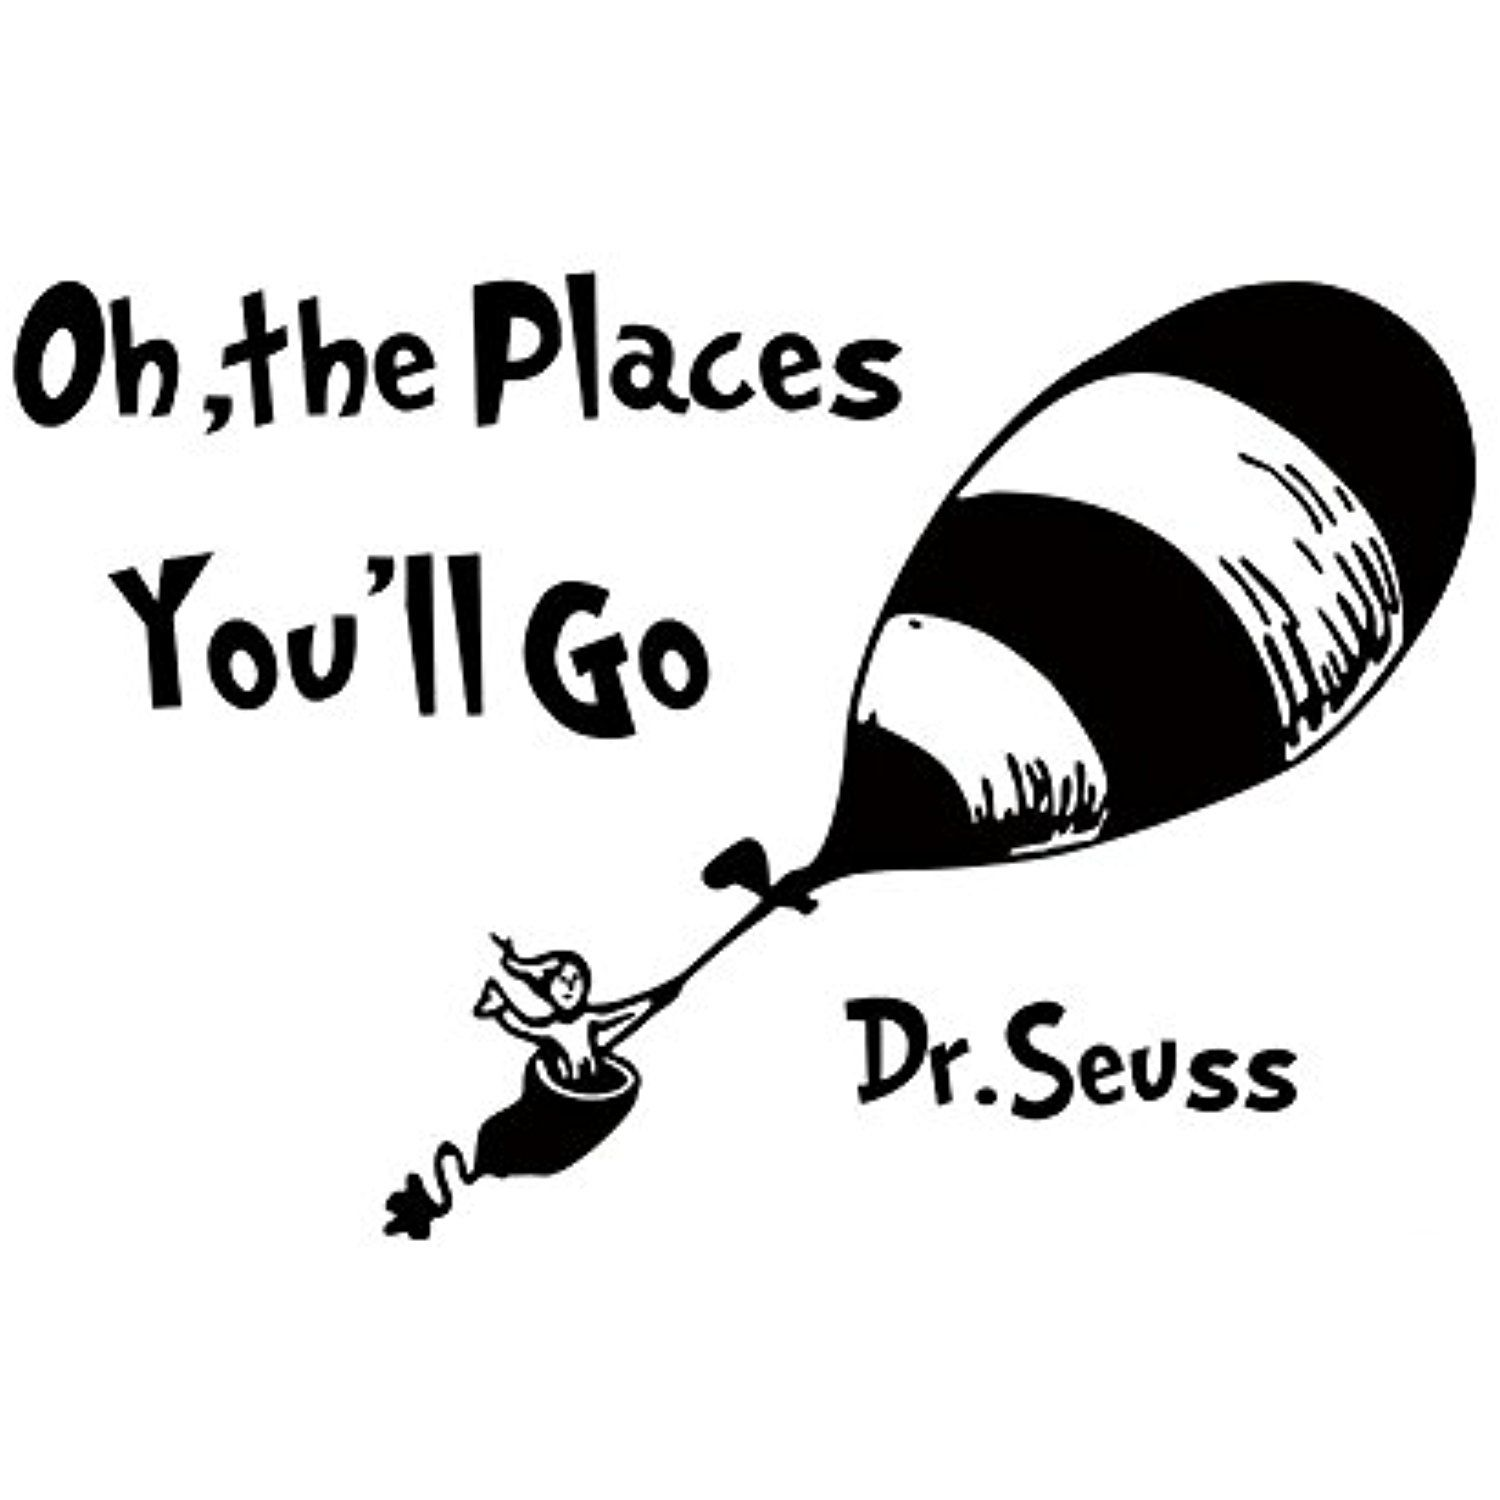 Fangeplus Tm Diy Removable Dr Seuss Oh The Places You Will Go Balloon Travel Art Mural Vinyl Waterproof Nursery Decals Kids Room Wall Stickers Kid Room Decor